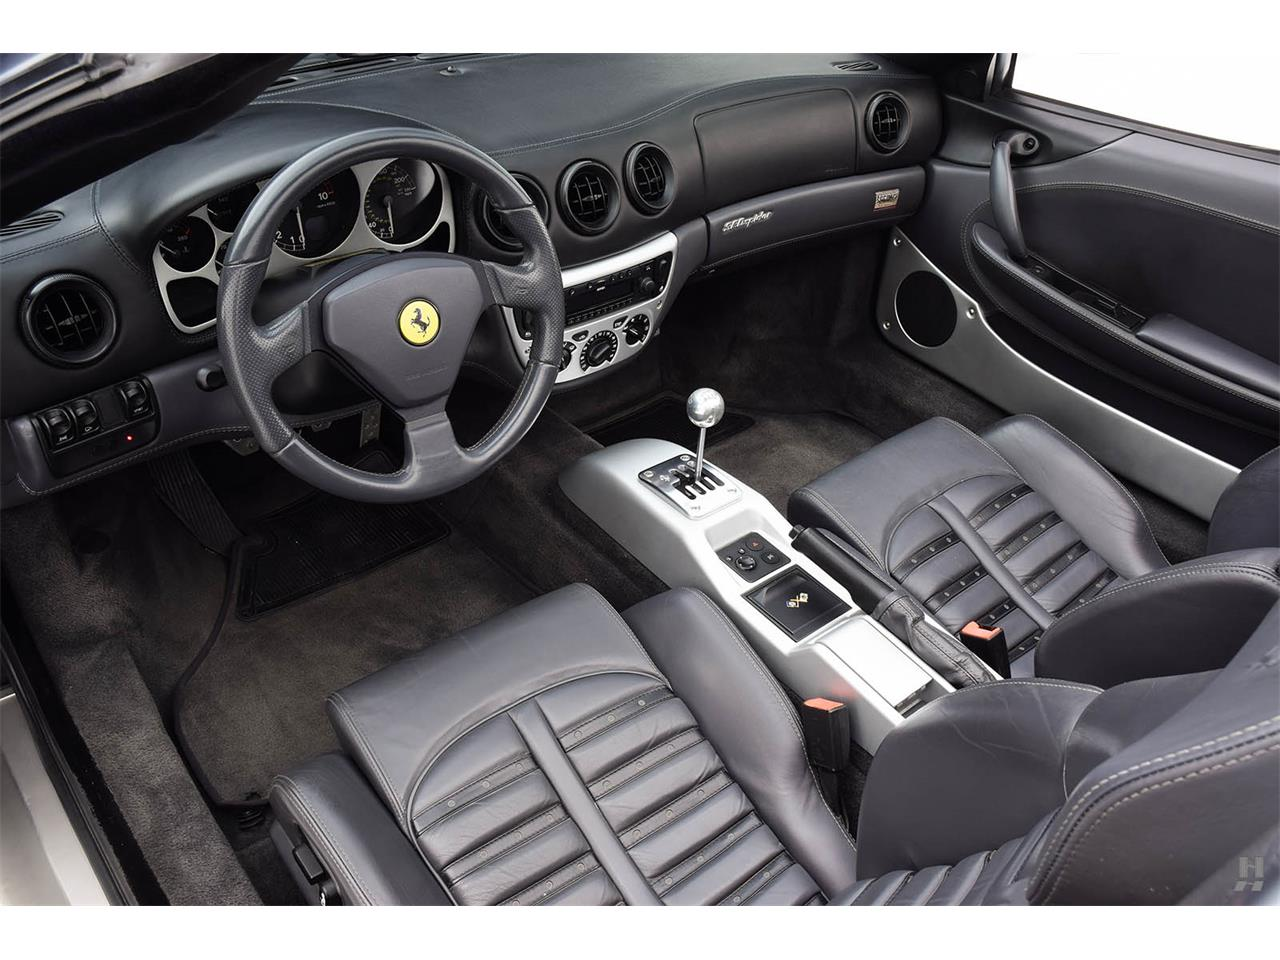 Large Picture of 2003 Ferrari 360 located in Missouri - $89,500.00 Offered by Hyman Ltd. Classic Cars - JHW5